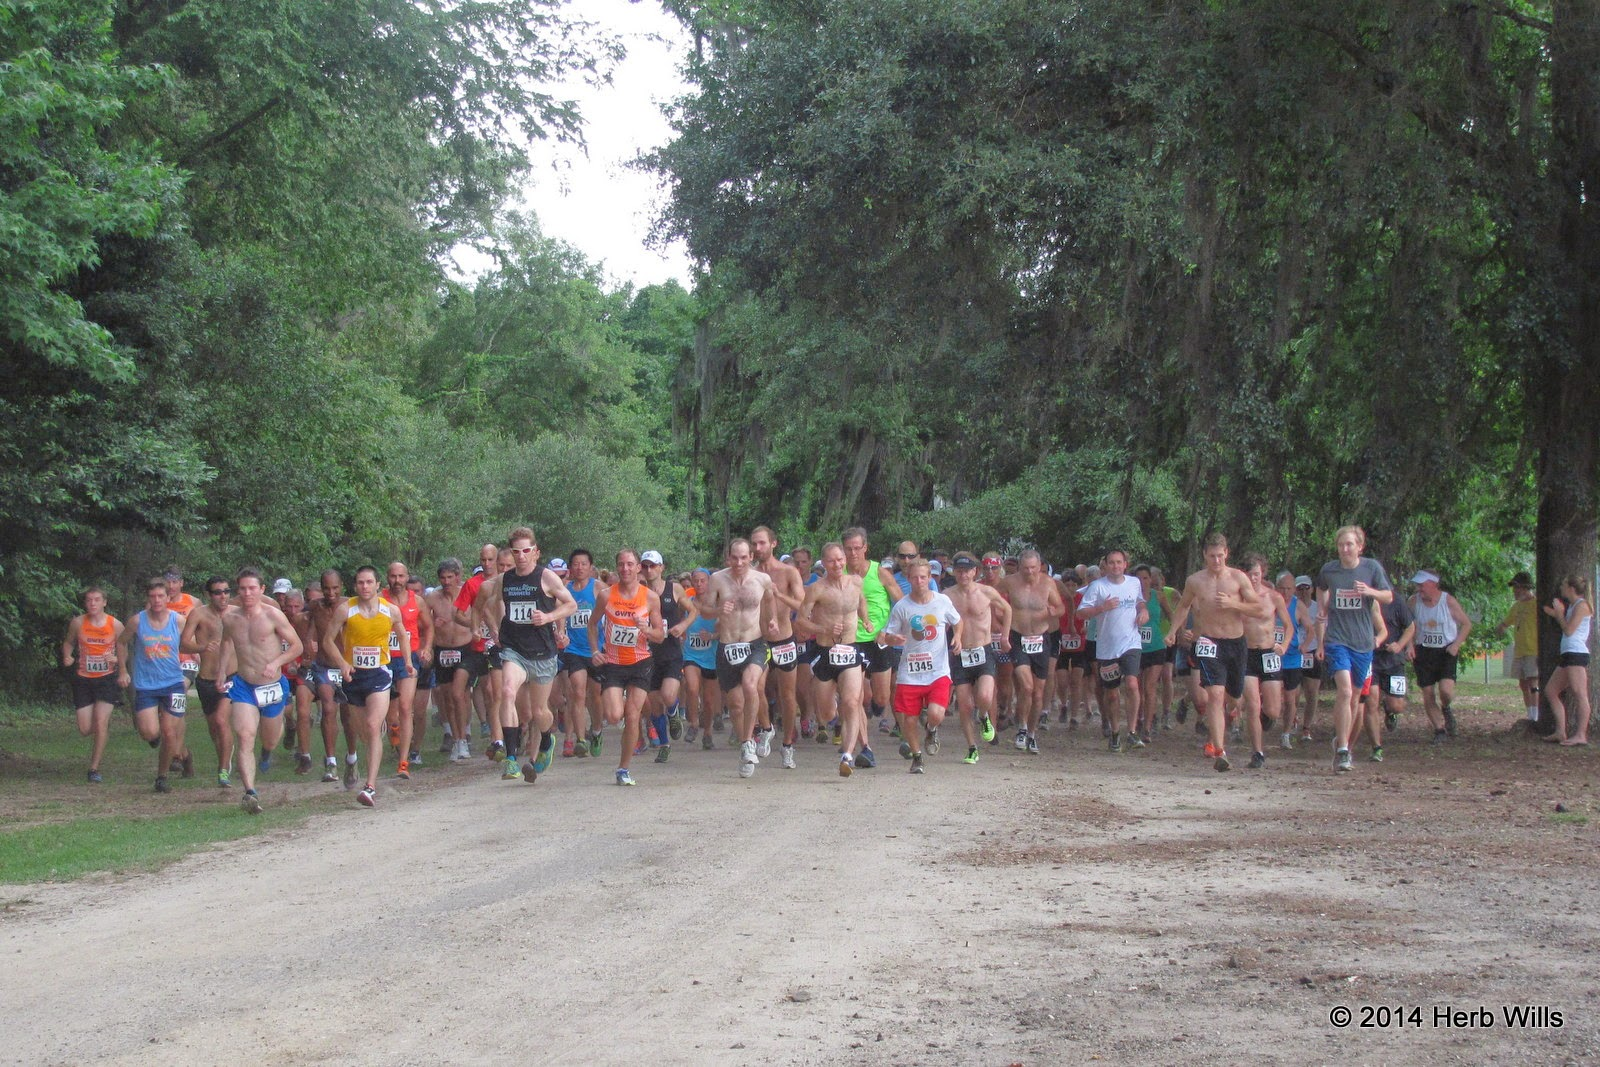 Gulf Winds Track Club's 2014 Potluck Cross-Country Race